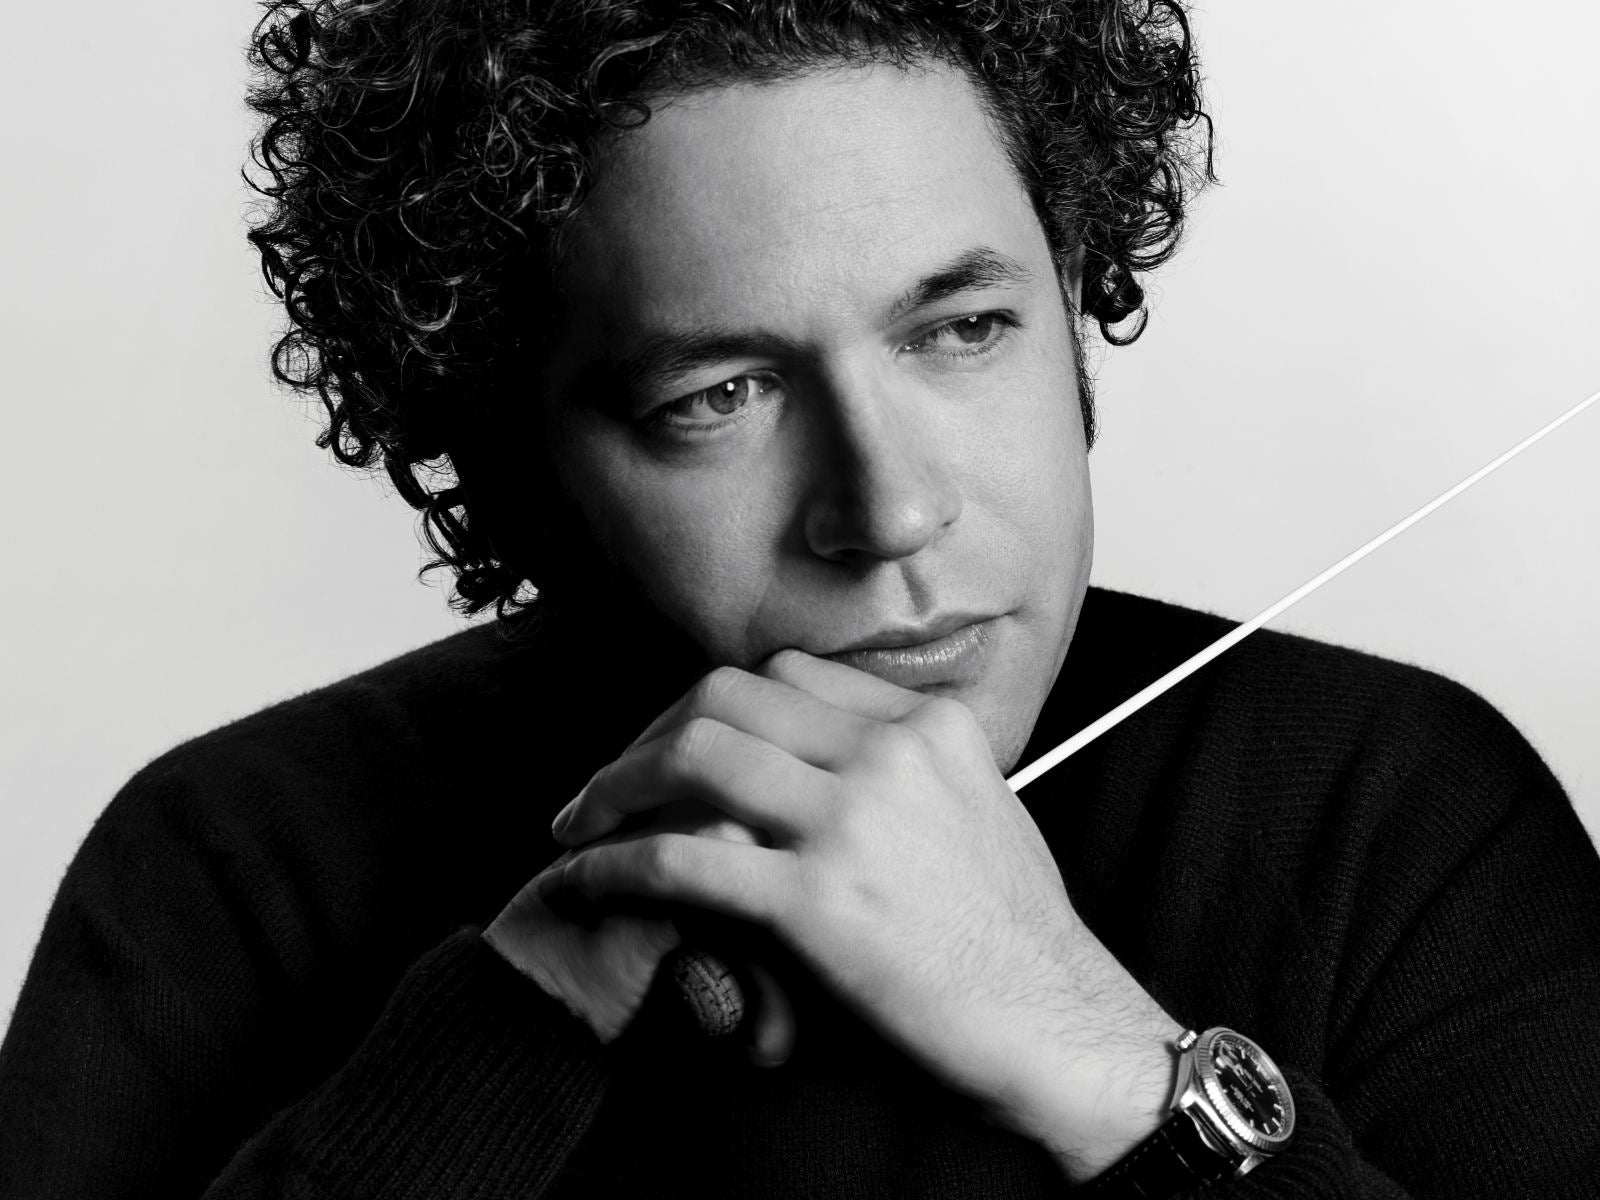 Gustavo Dudamel photographed by Citizens of Humanity